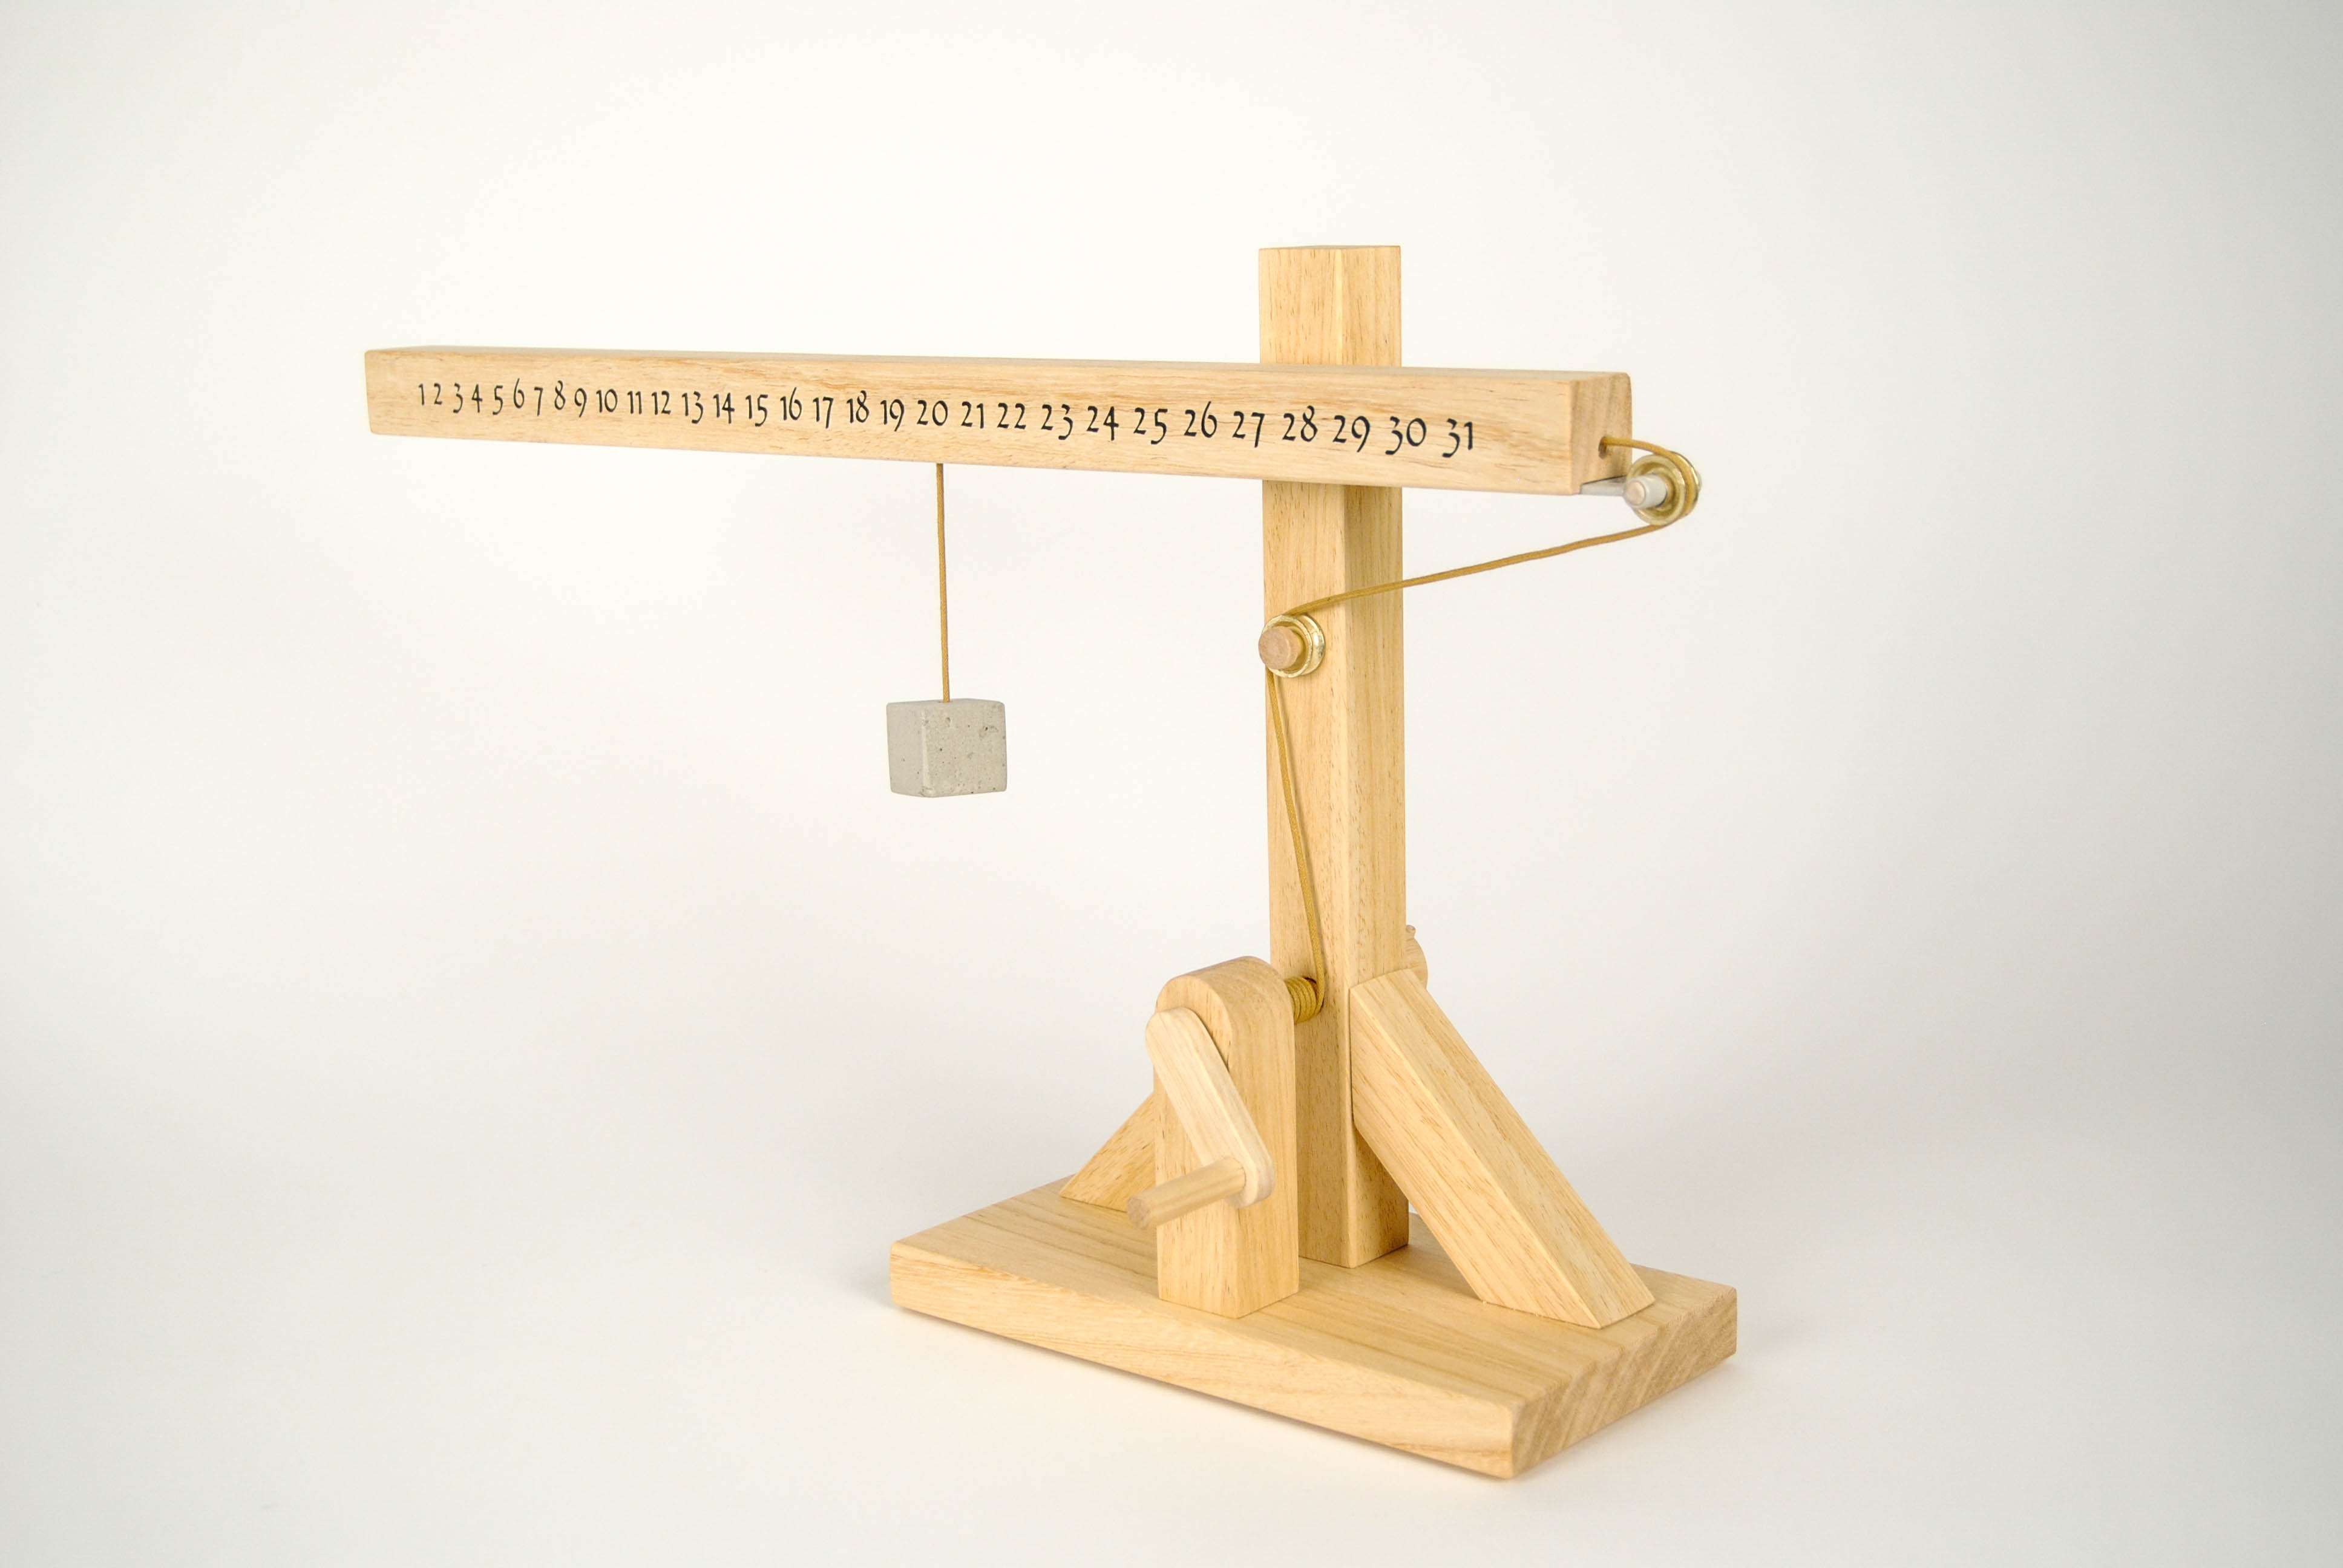 leonardo da vinci wooden calendar with printed numbers and rope with stone for sign the date